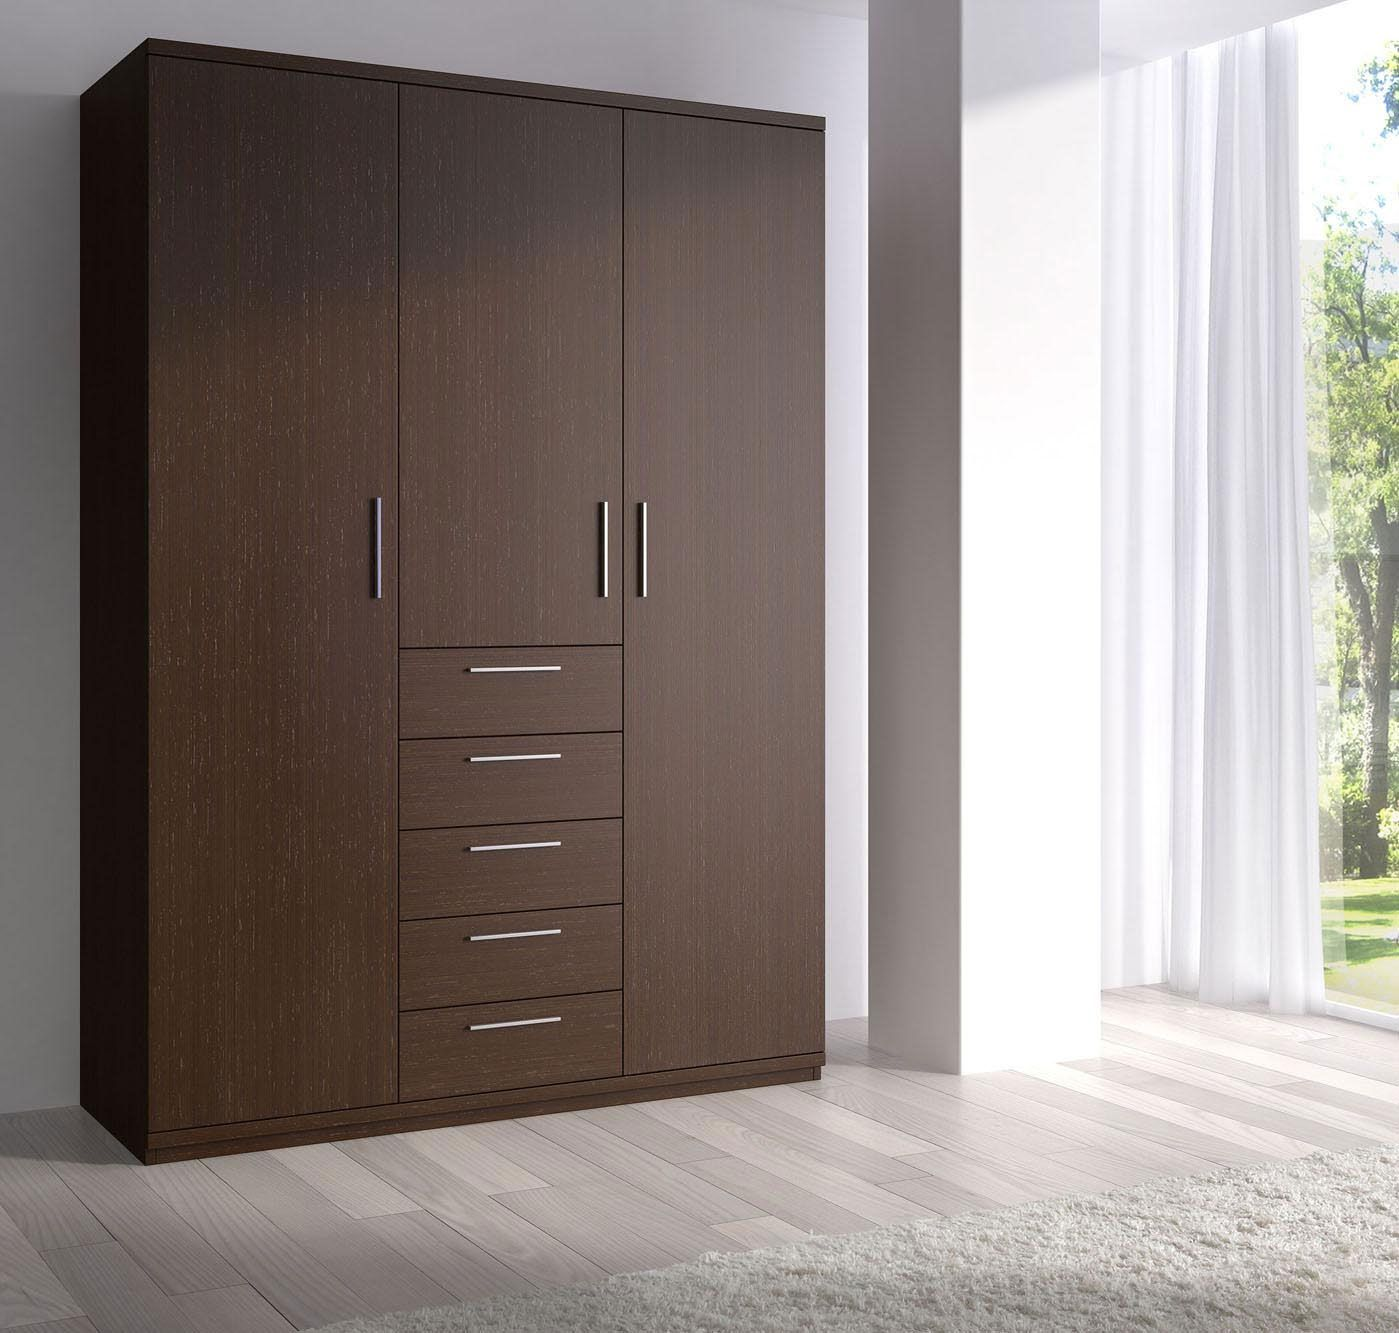 Bedroom Classy Wooden Closet Wardrobe Ideas With Modern Design - bedroom set designs with wardrobe